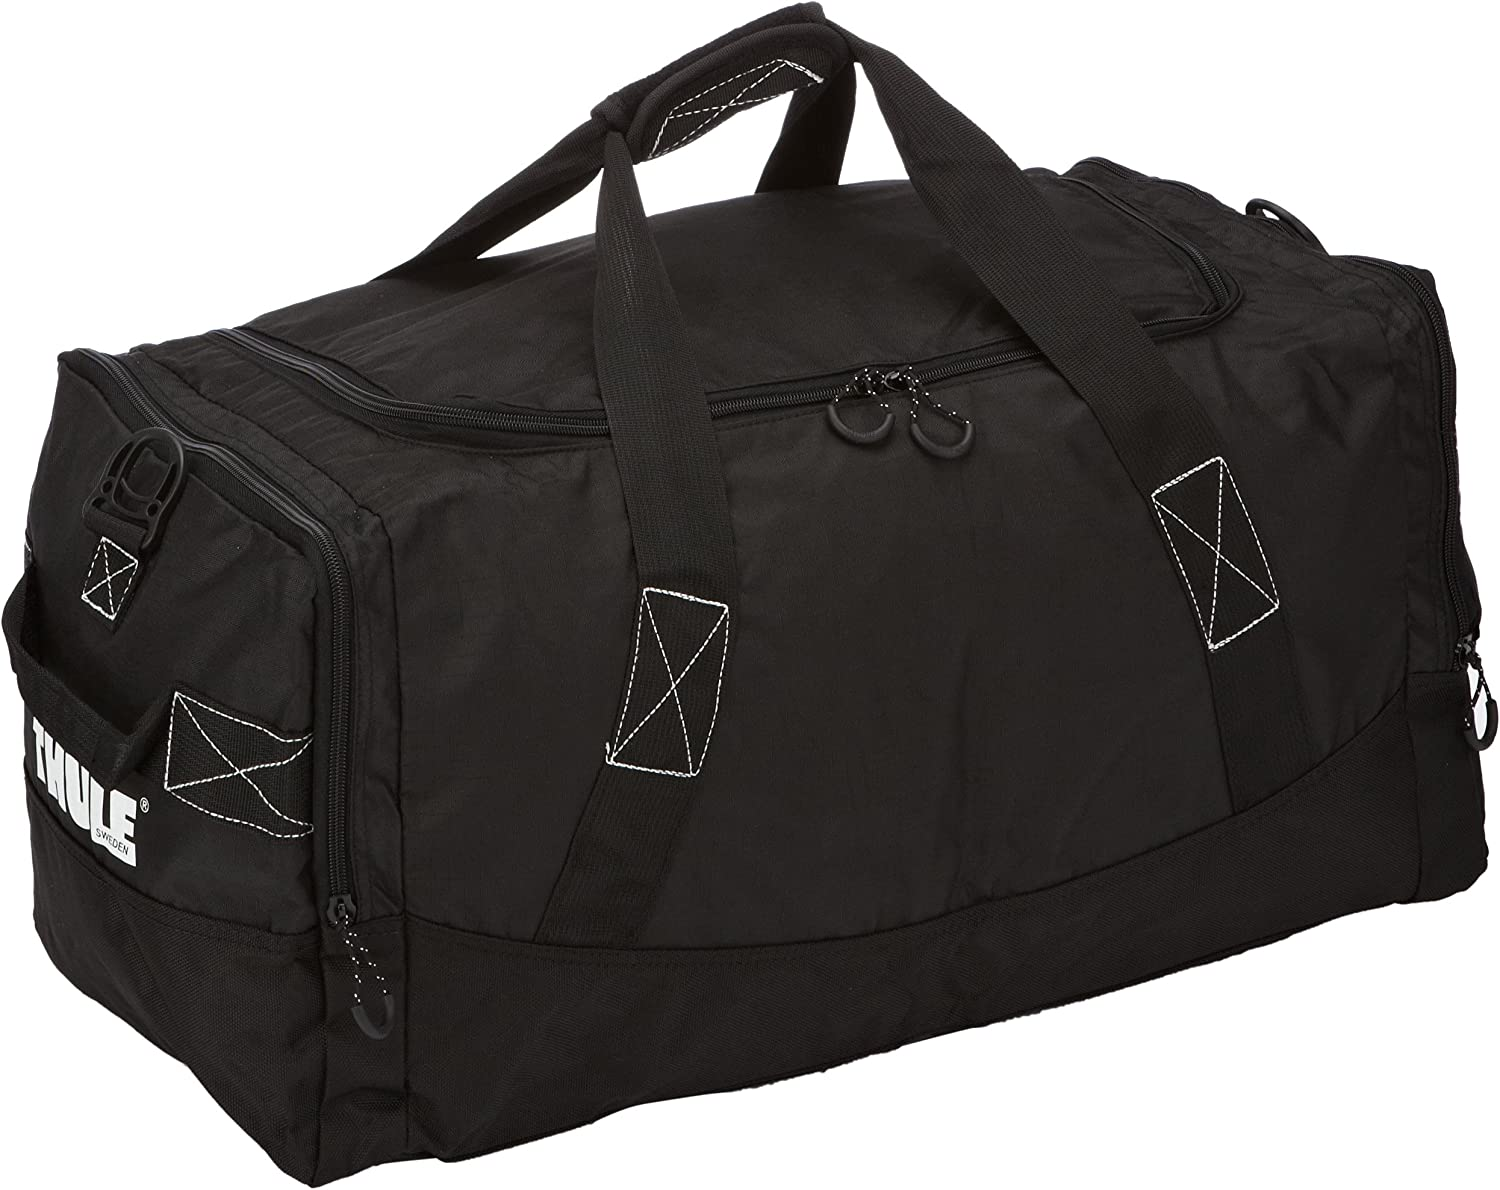 NEW Thule GoPack Duffel Bag 8002 for Roof Box or Car Boot Easy Just Load /& Go